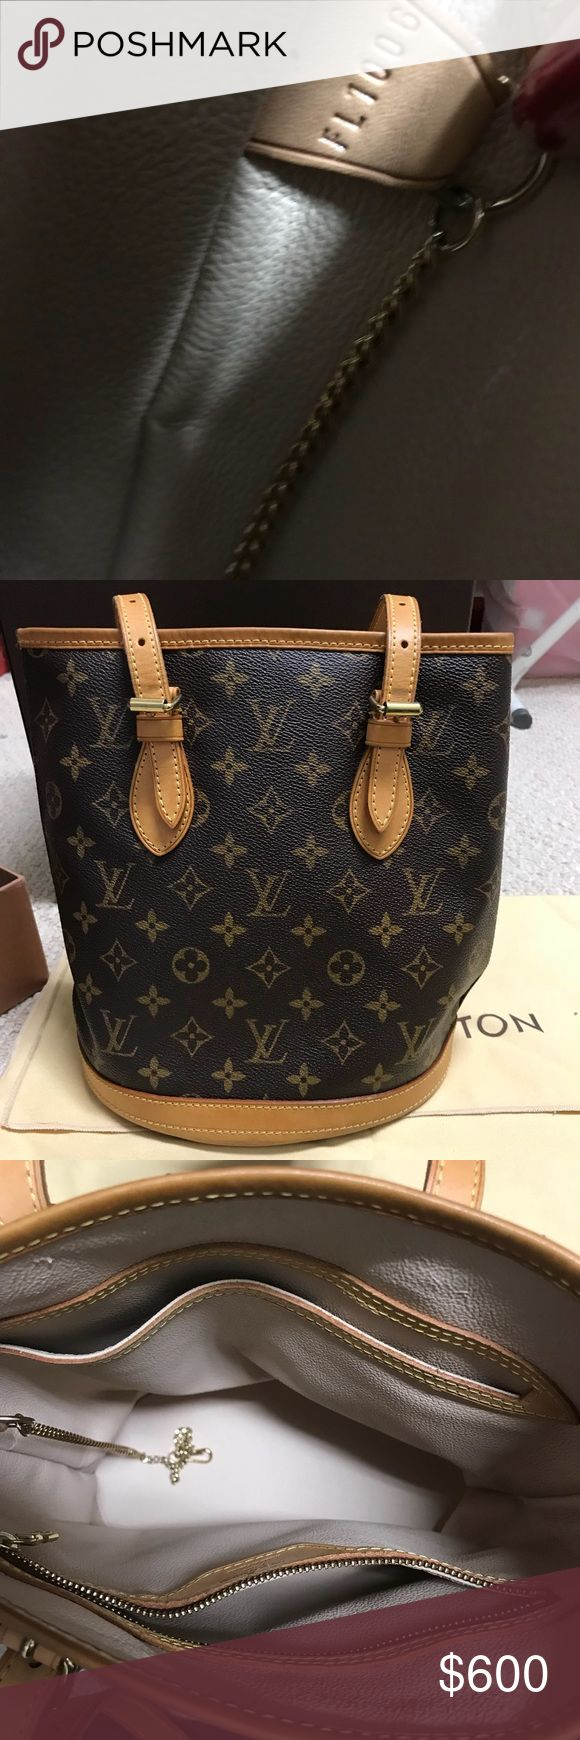 LOUIS VUITTON BUCKET BAG This is an authentic louis vuitton bucket bag that was purchased a while back. This bag is in great condition and one of the best you'll find on the market for this price.   This purchase comes with dust bag and the box.  Please feel free to leave any questions or offers Louis Vuitton Bags Shoulder Bags